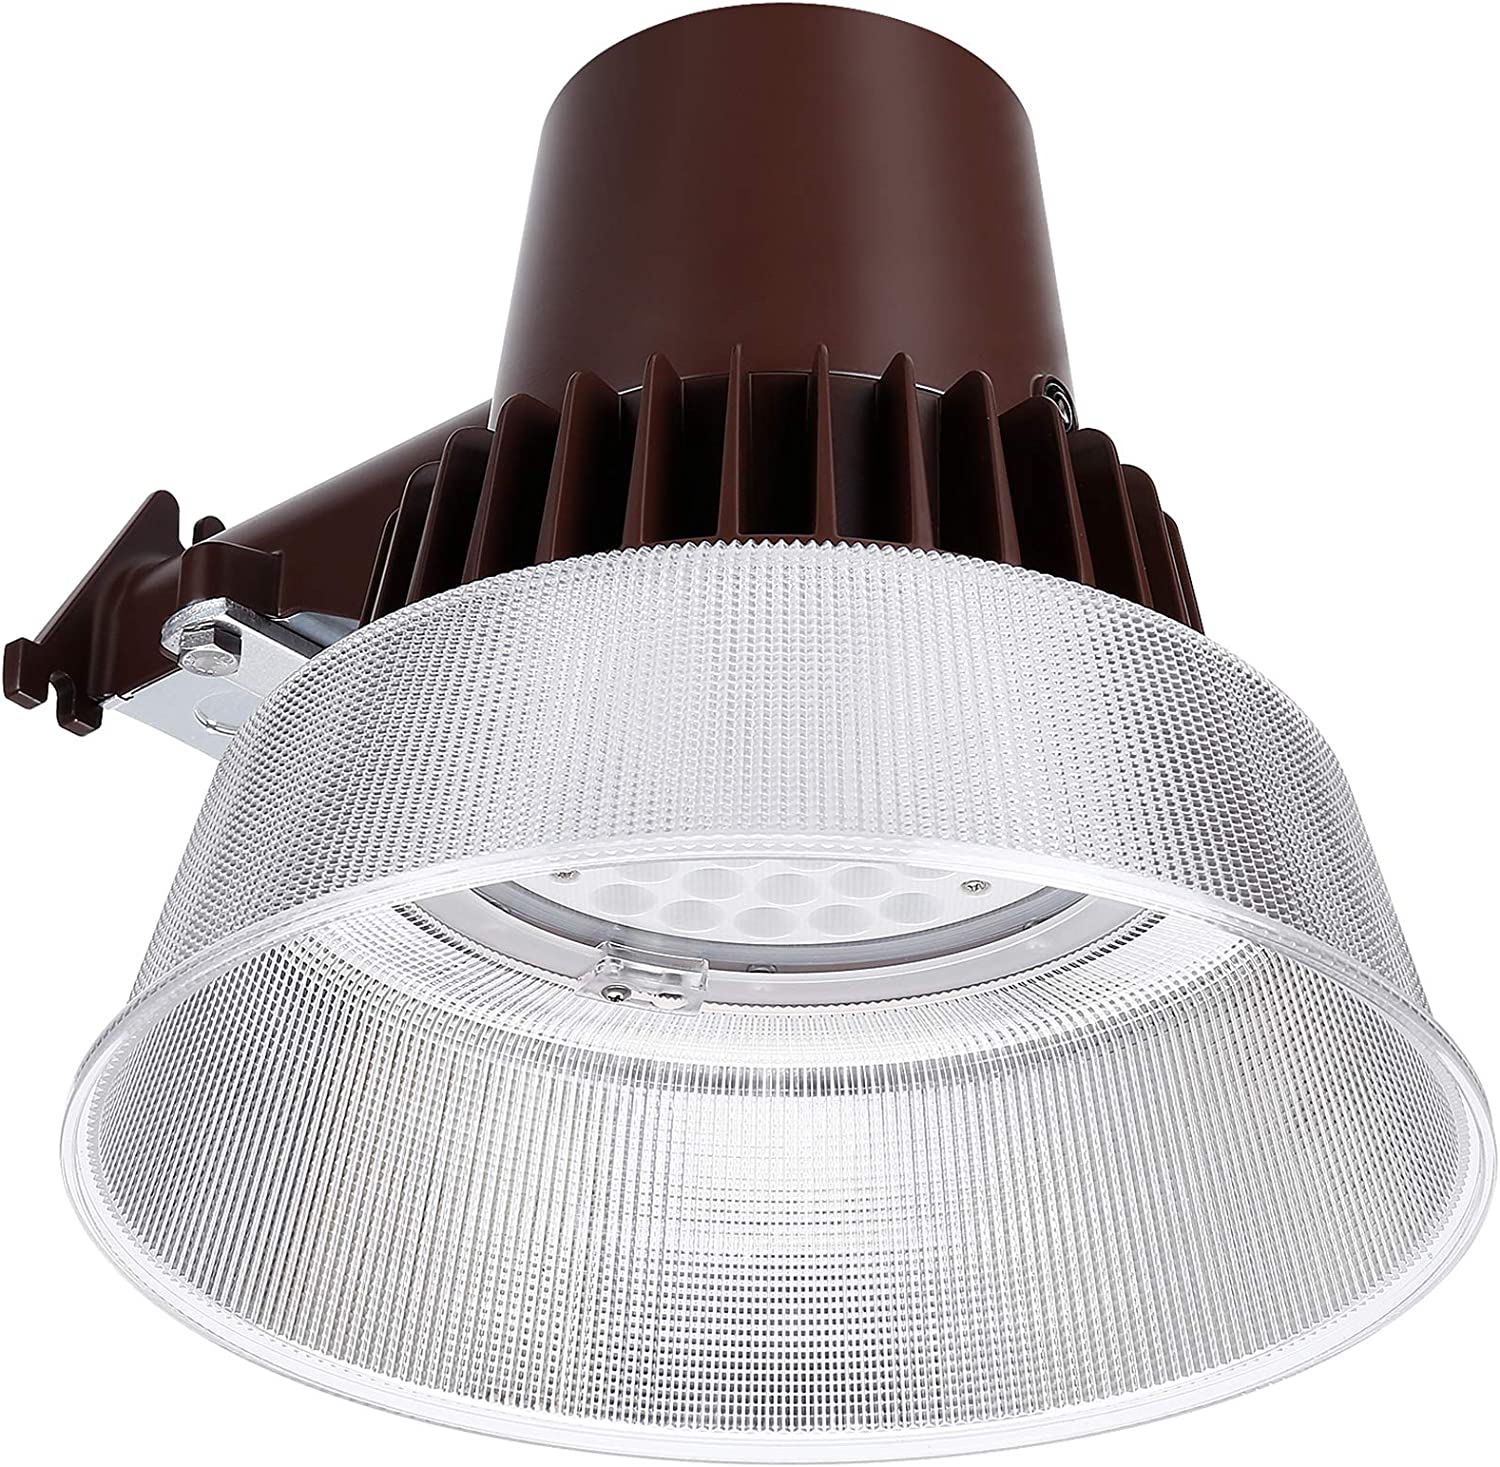 LEONLITE LED Barn Our shop most popular Light 50W Anti-Glare Great interest Dusk to Included Cover